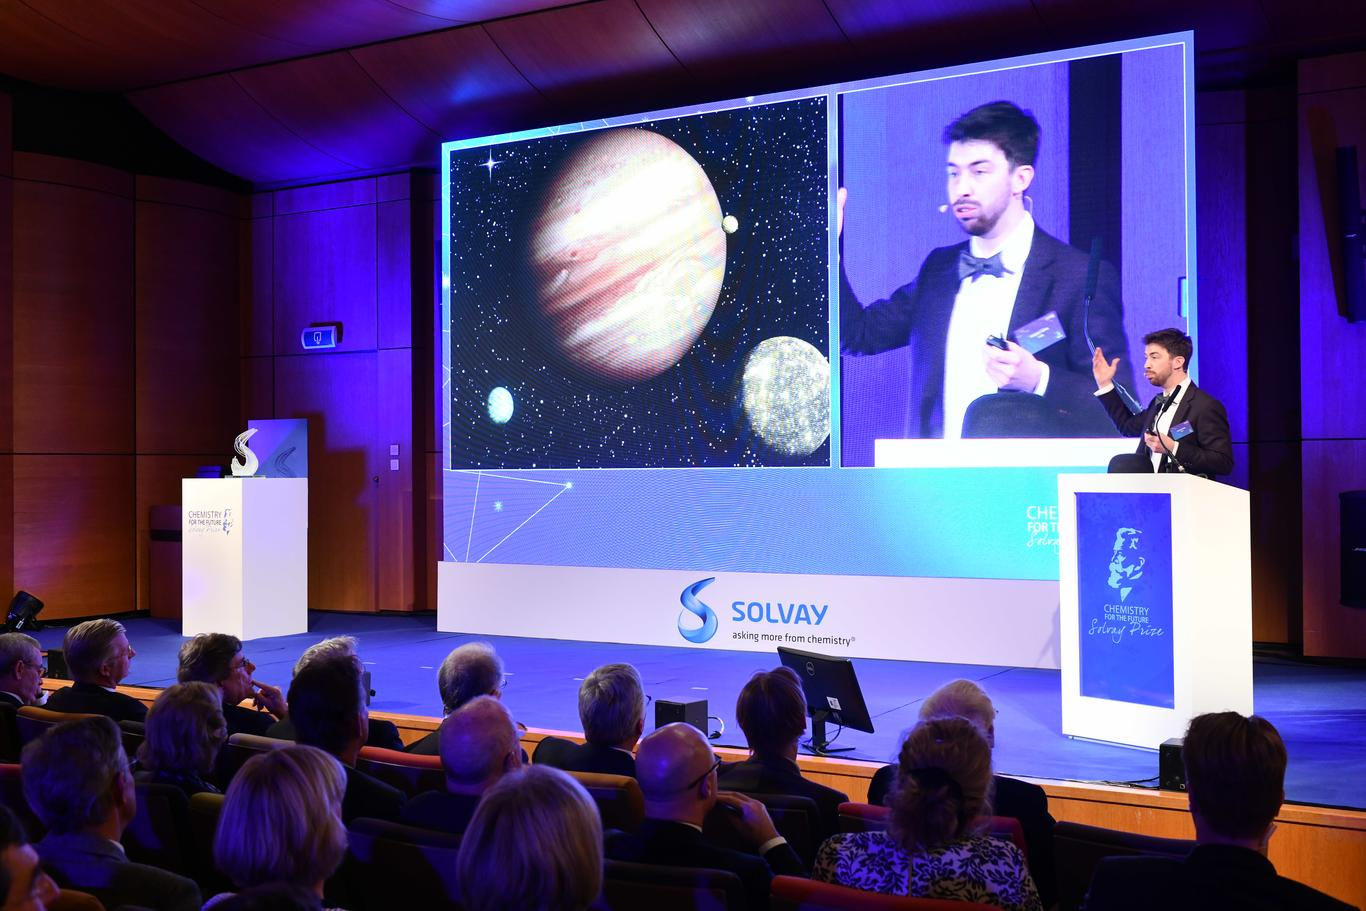 vincent-ginis-delivering-a-speech-at-the-solvay-prize-ceremony